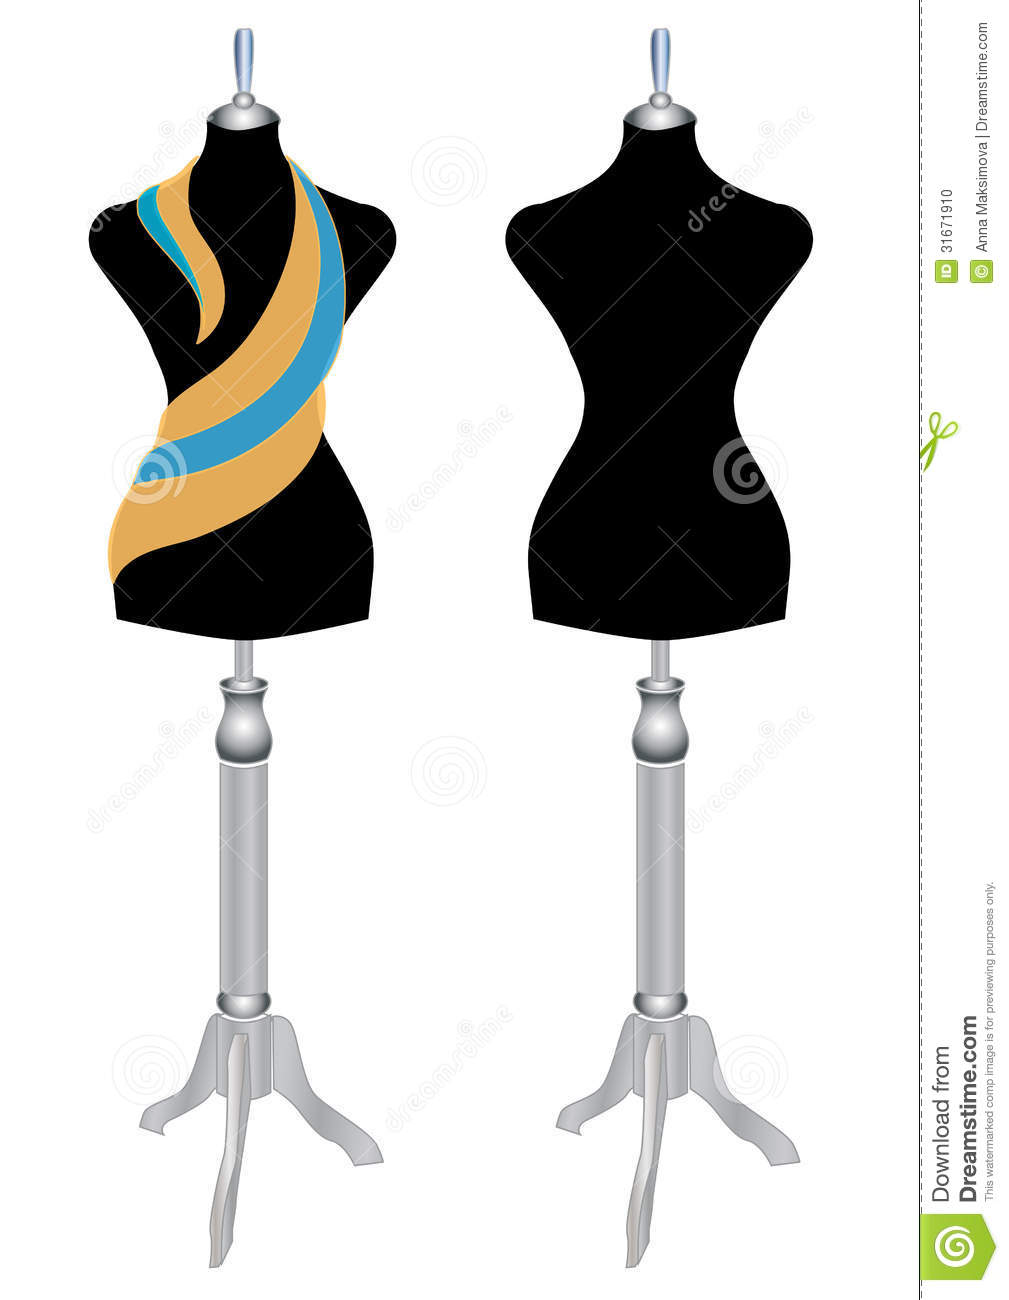 Seamstress Mannequin Clipart mannequin sewing stock photo - image ...